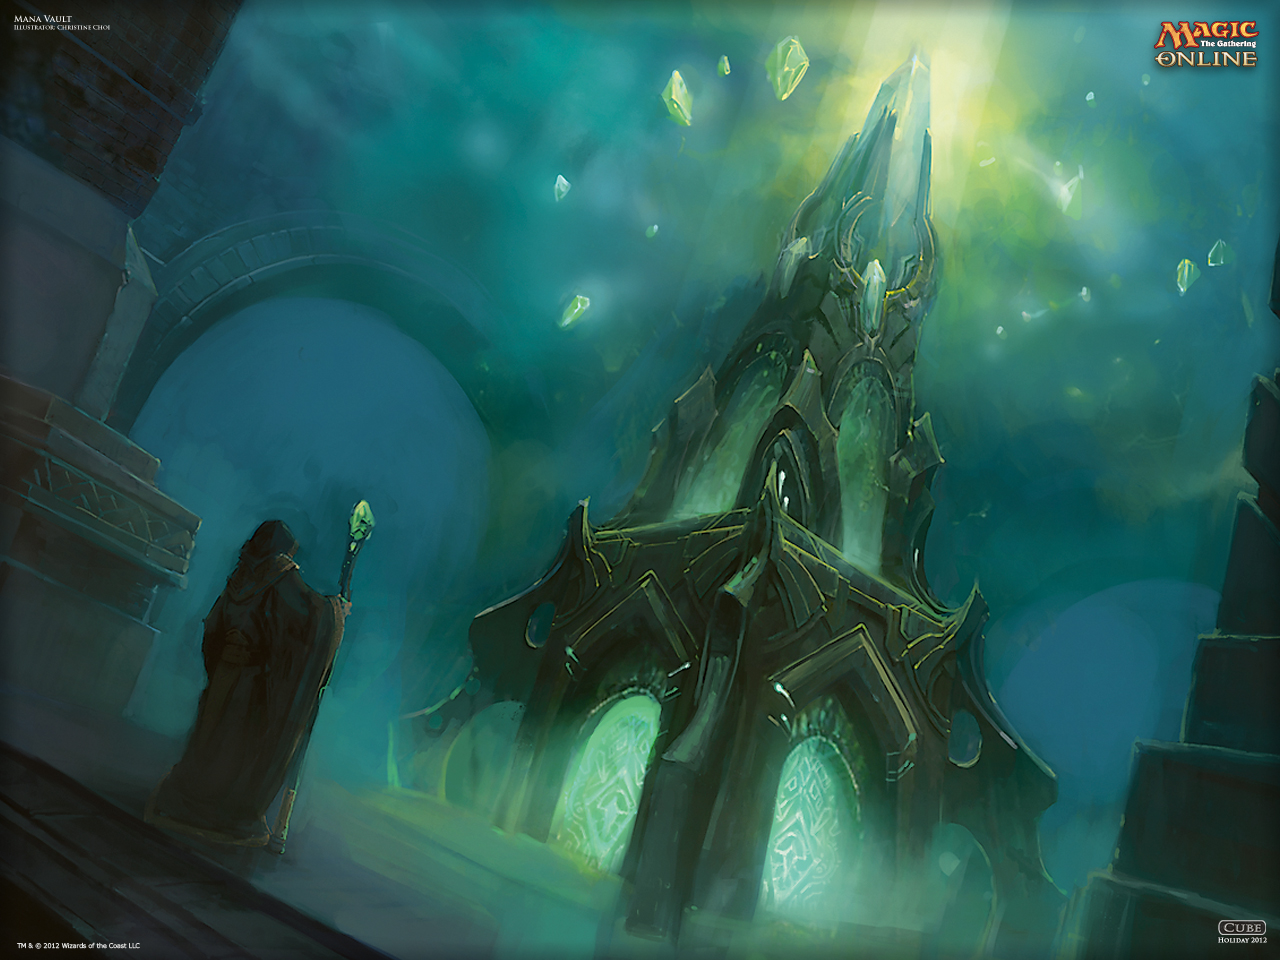 Wallpaper Of The Day Mana Vault Magic The Gathering